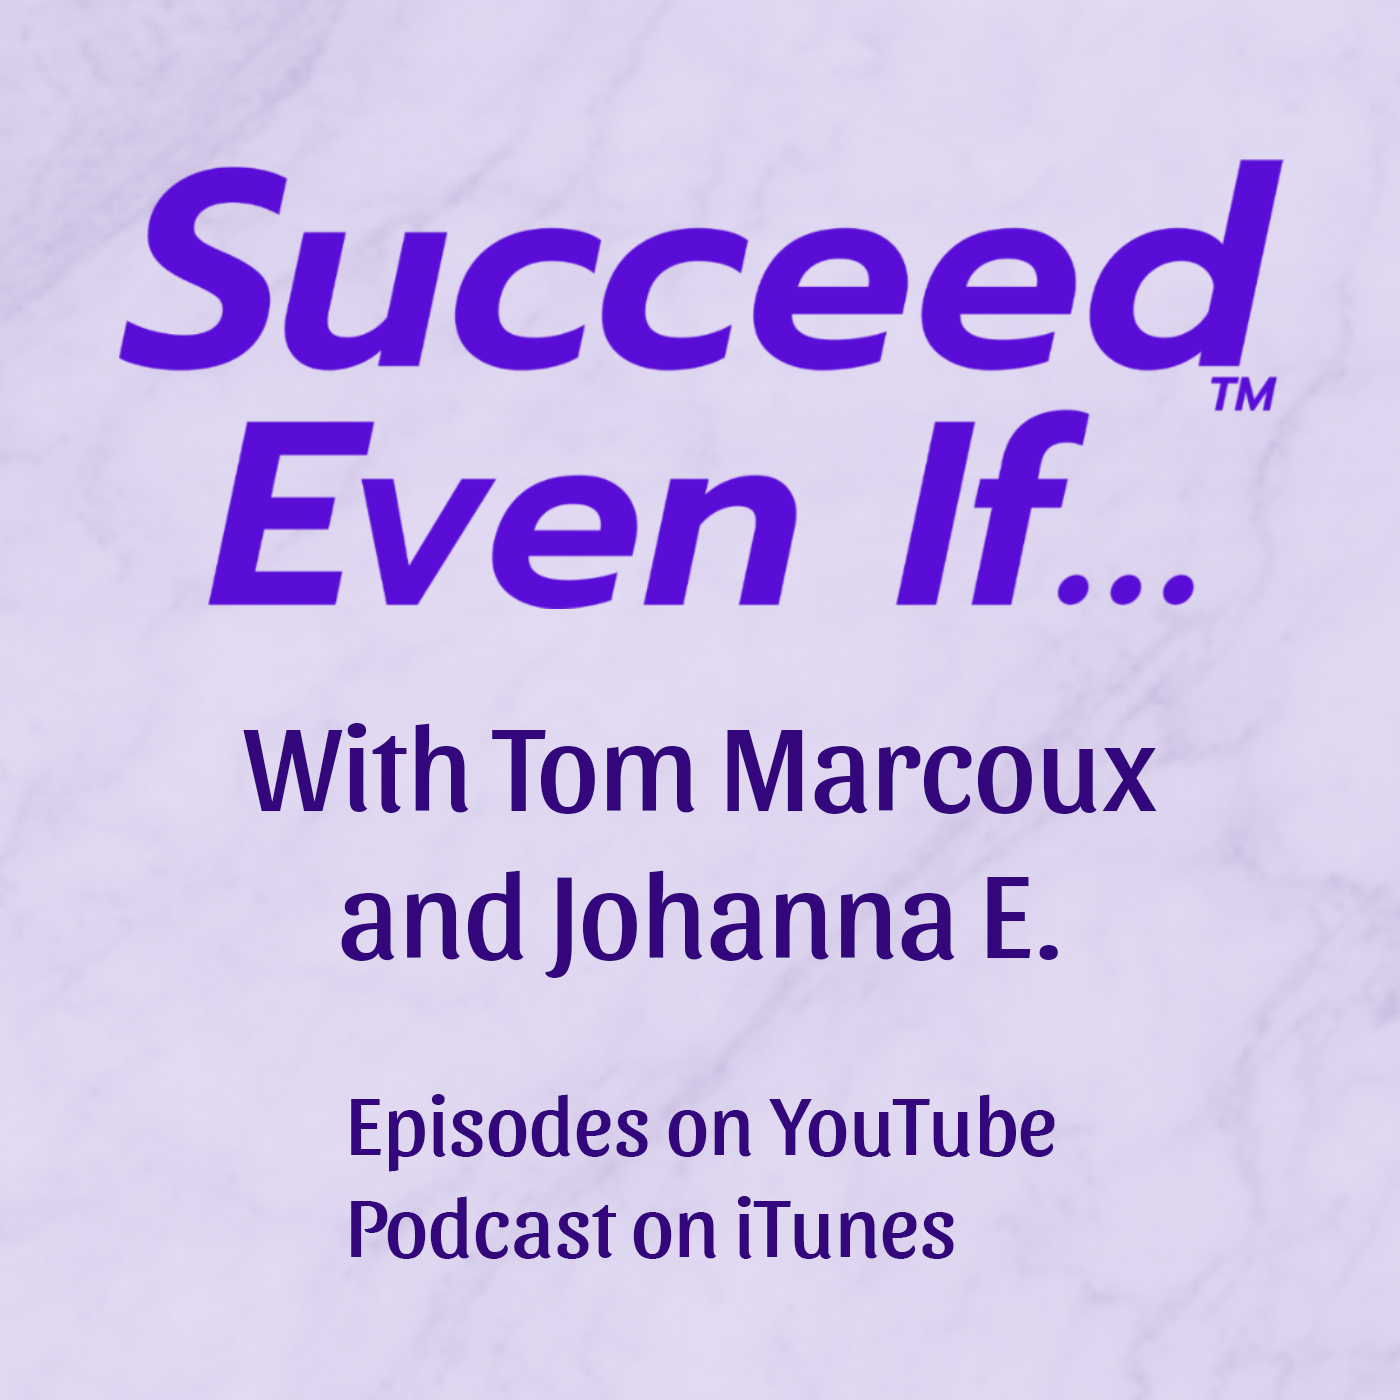 Succeed Even If - with Tom Marcoux and Johanna E.